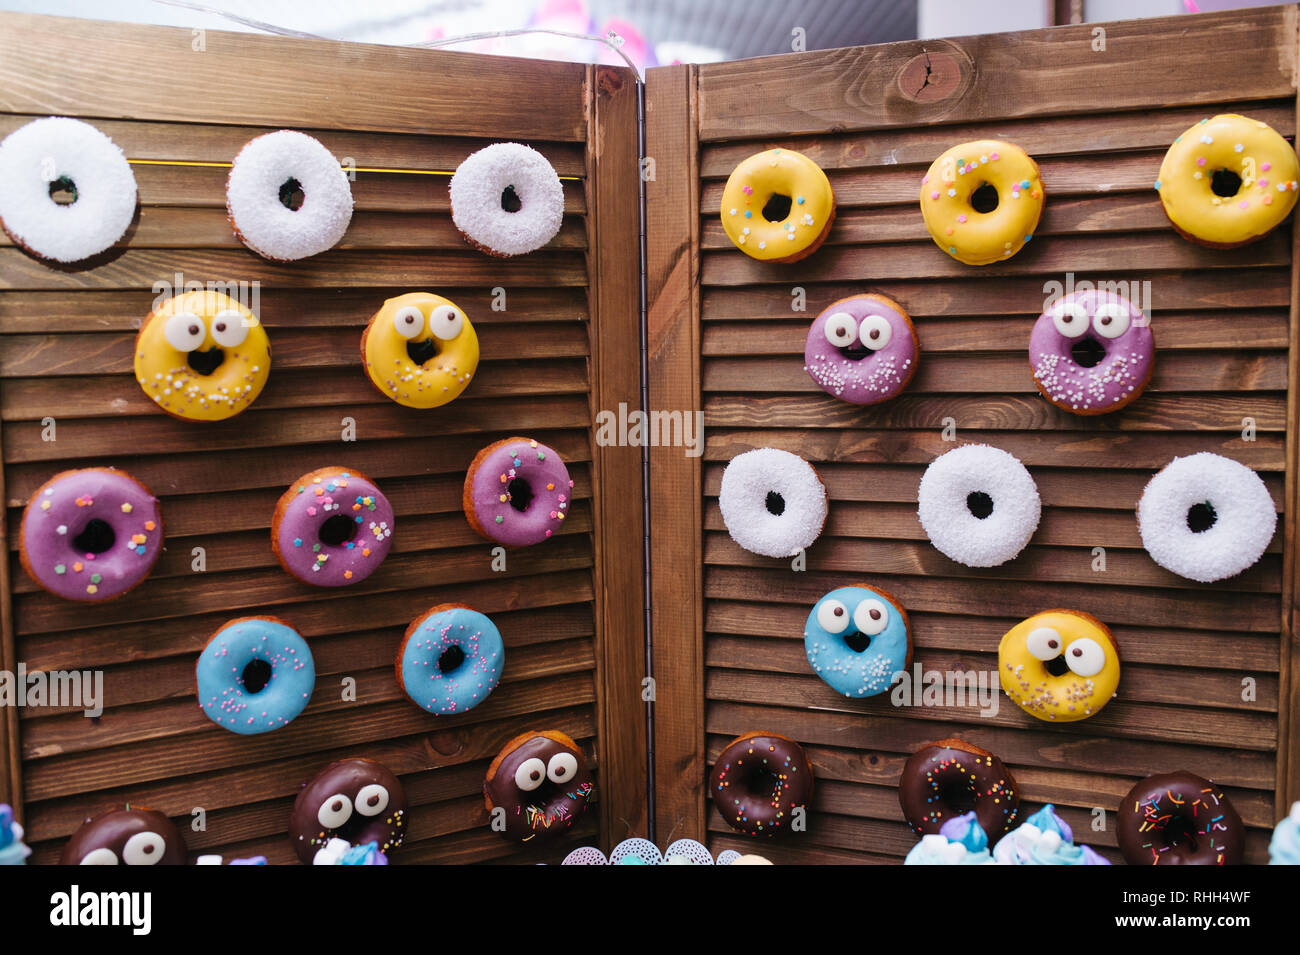 Yummy donuts hanging over wooden folding screen. White yellow, chocalate and white coating with faces. Glaze. Stock Photo